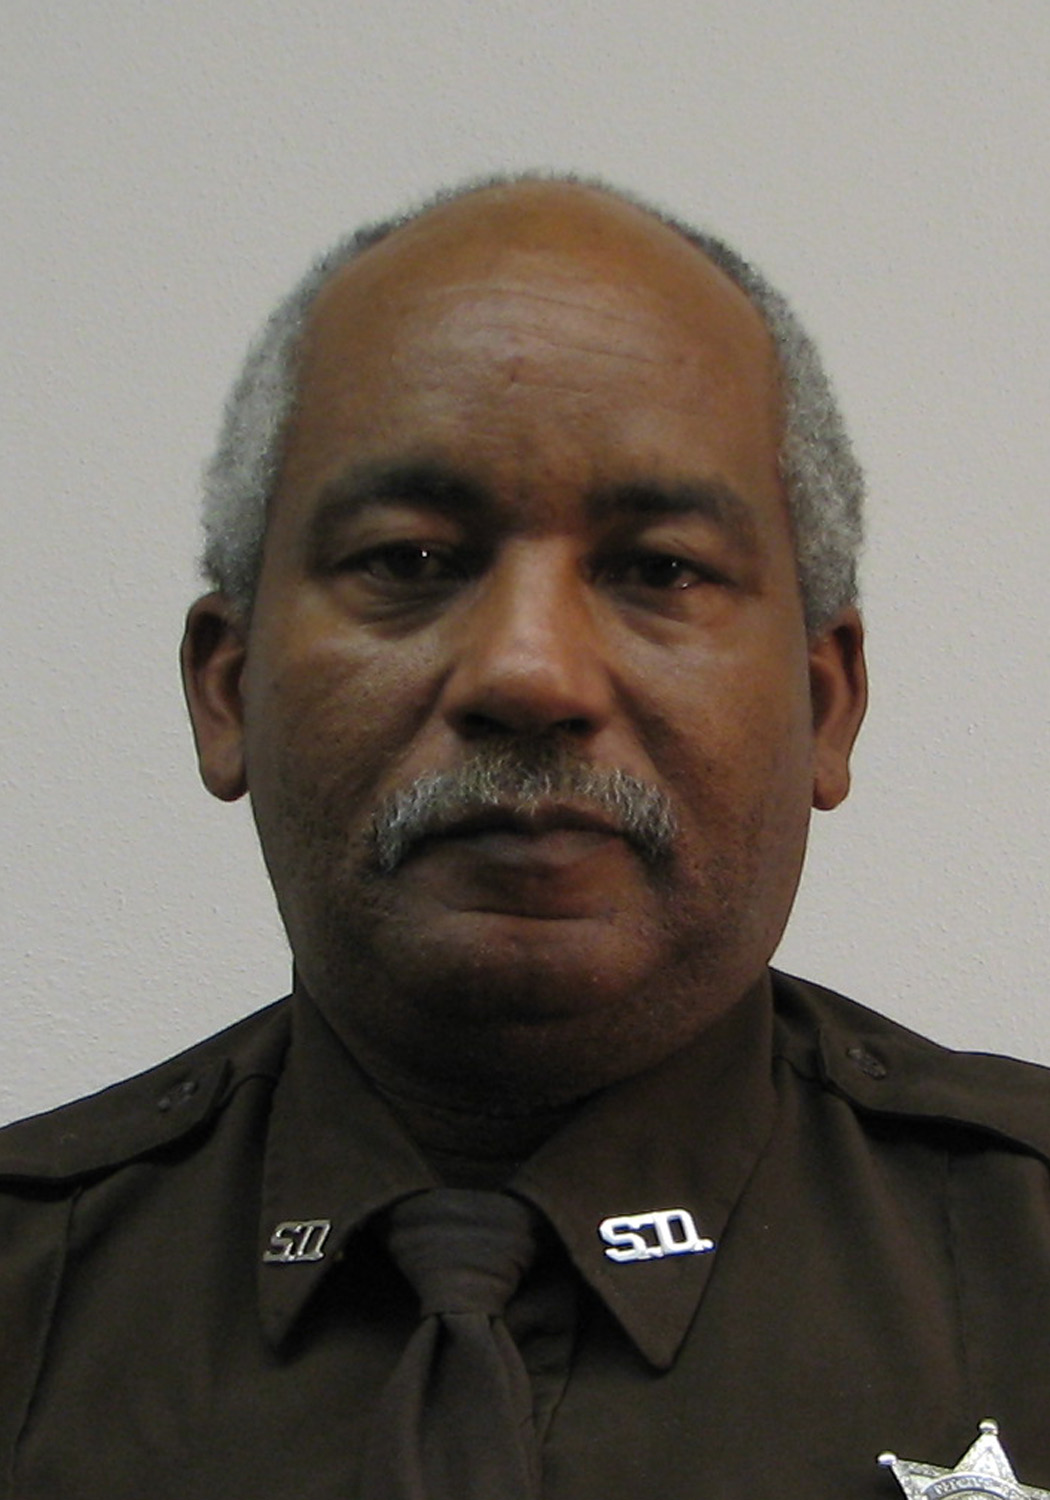 Deputy Sheriff Lamont C. Reid | St. Clair County Sheriff's Department, Illinois